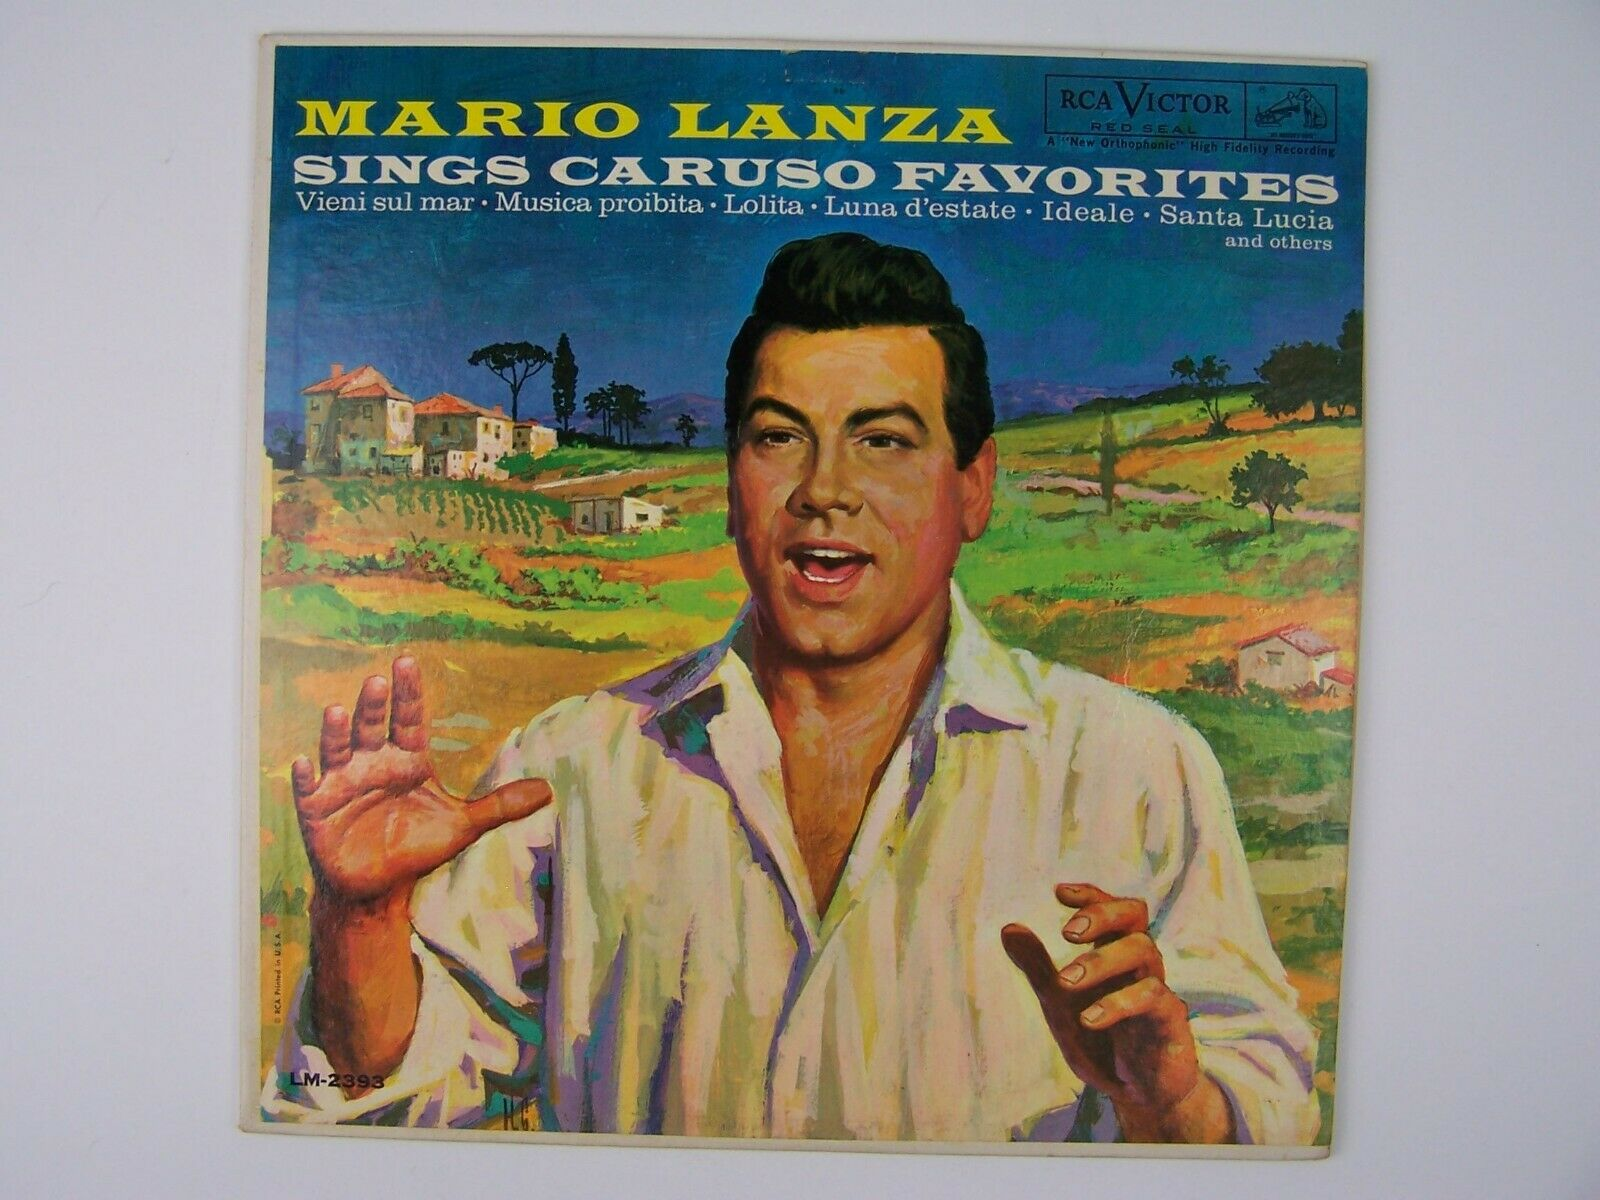 Mario Lanza - Sings Caruso Favorites Vinyl LP Record Al